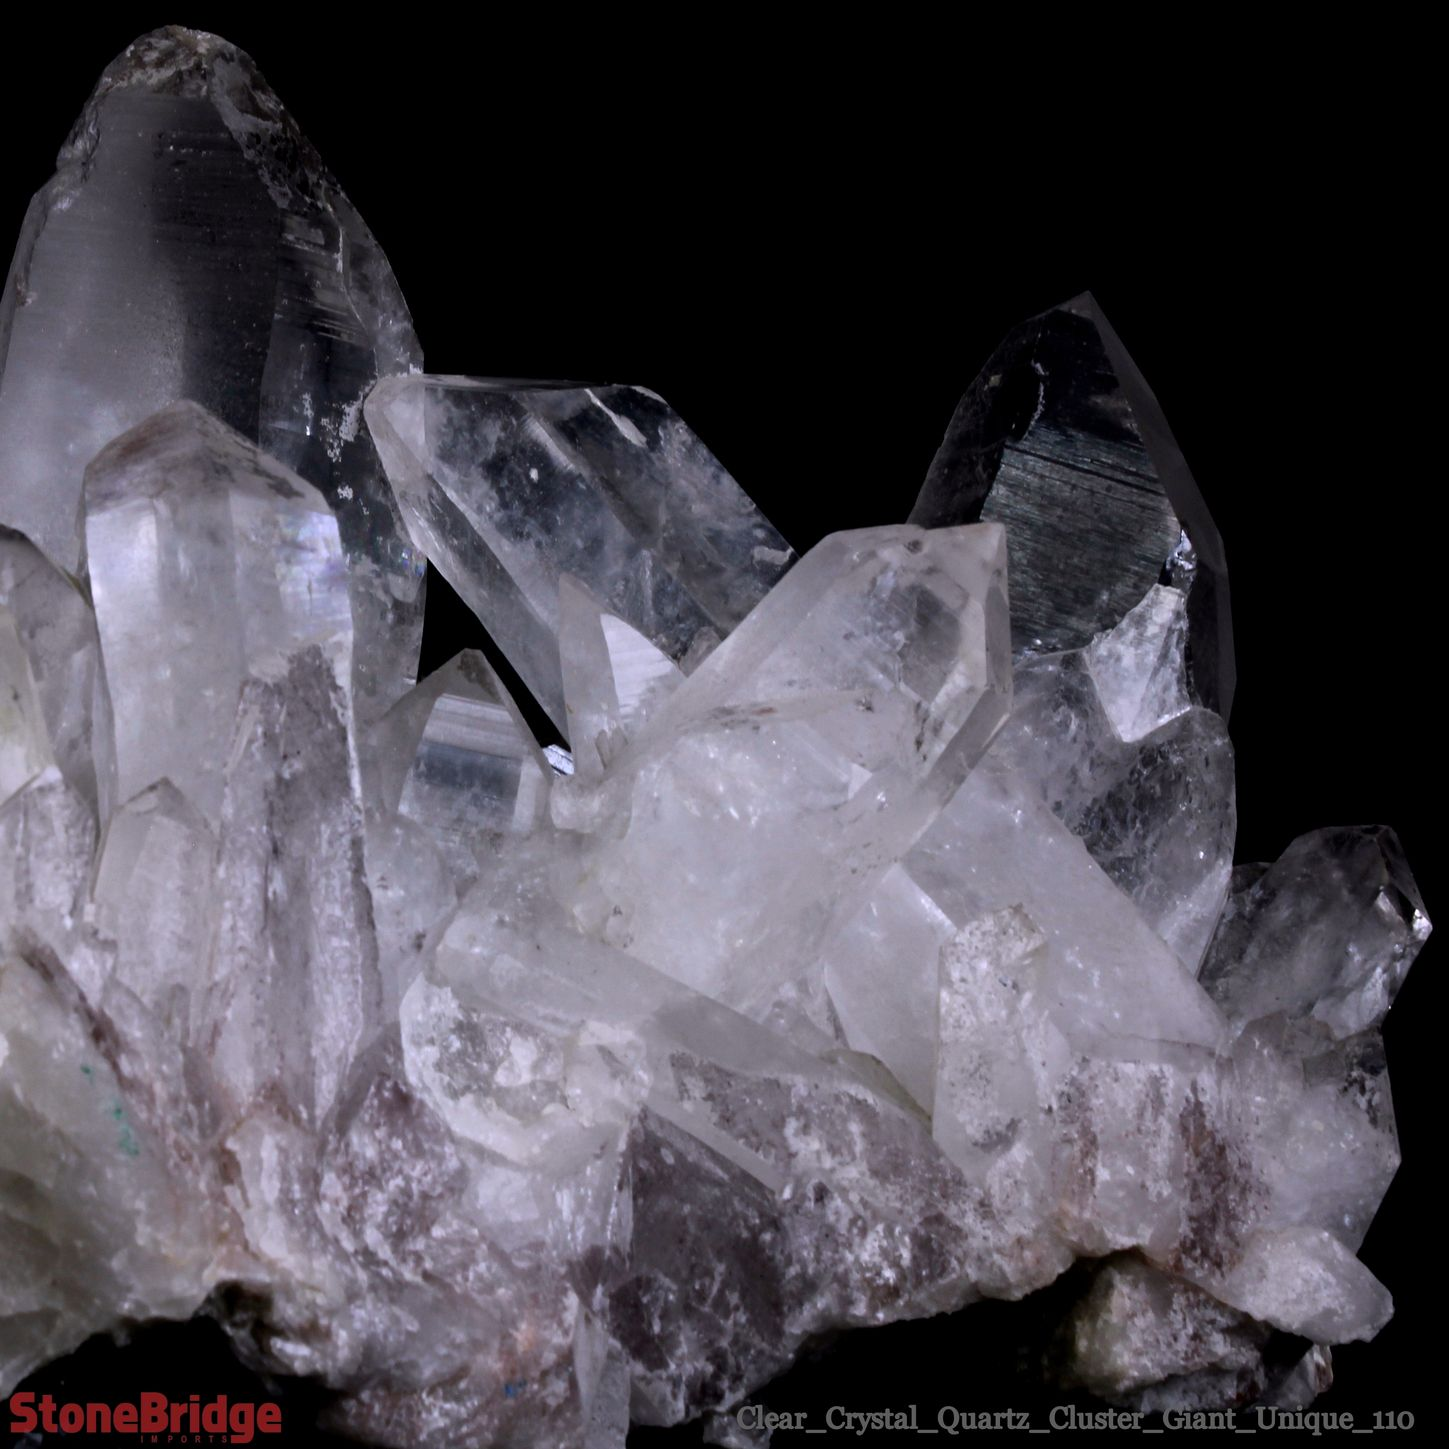 CLCRU110_Clear_Crystal_Quartz_Cluster_Giant_Unique_1105.jpg